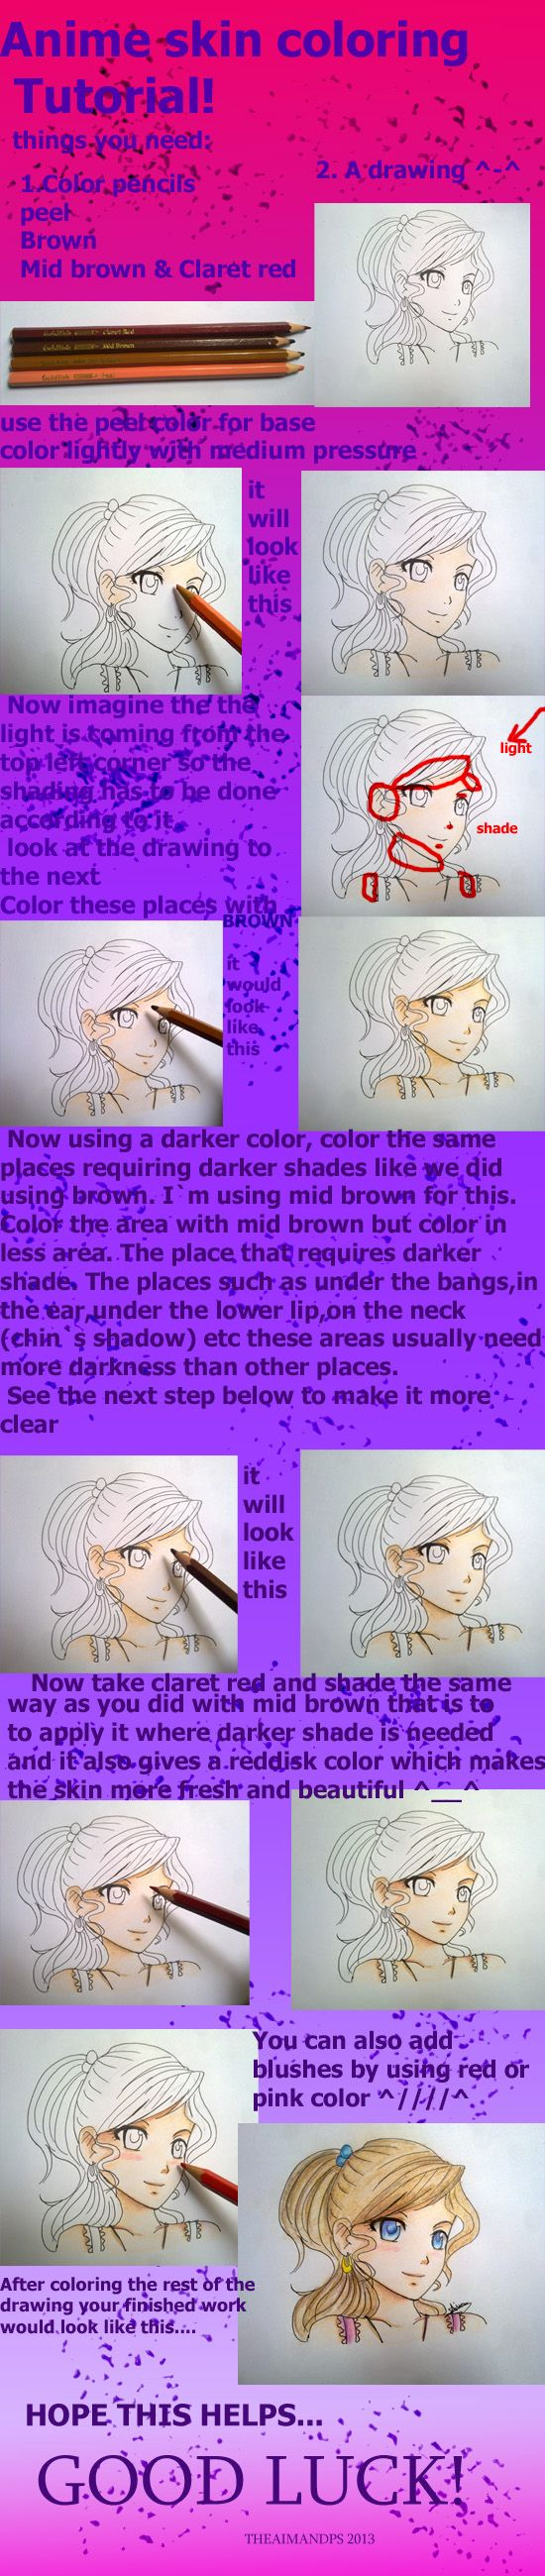 Anime Skin Coloring Tutorial Coloring Tutorial Colored Pencil Tutorial Sketches Tutorial